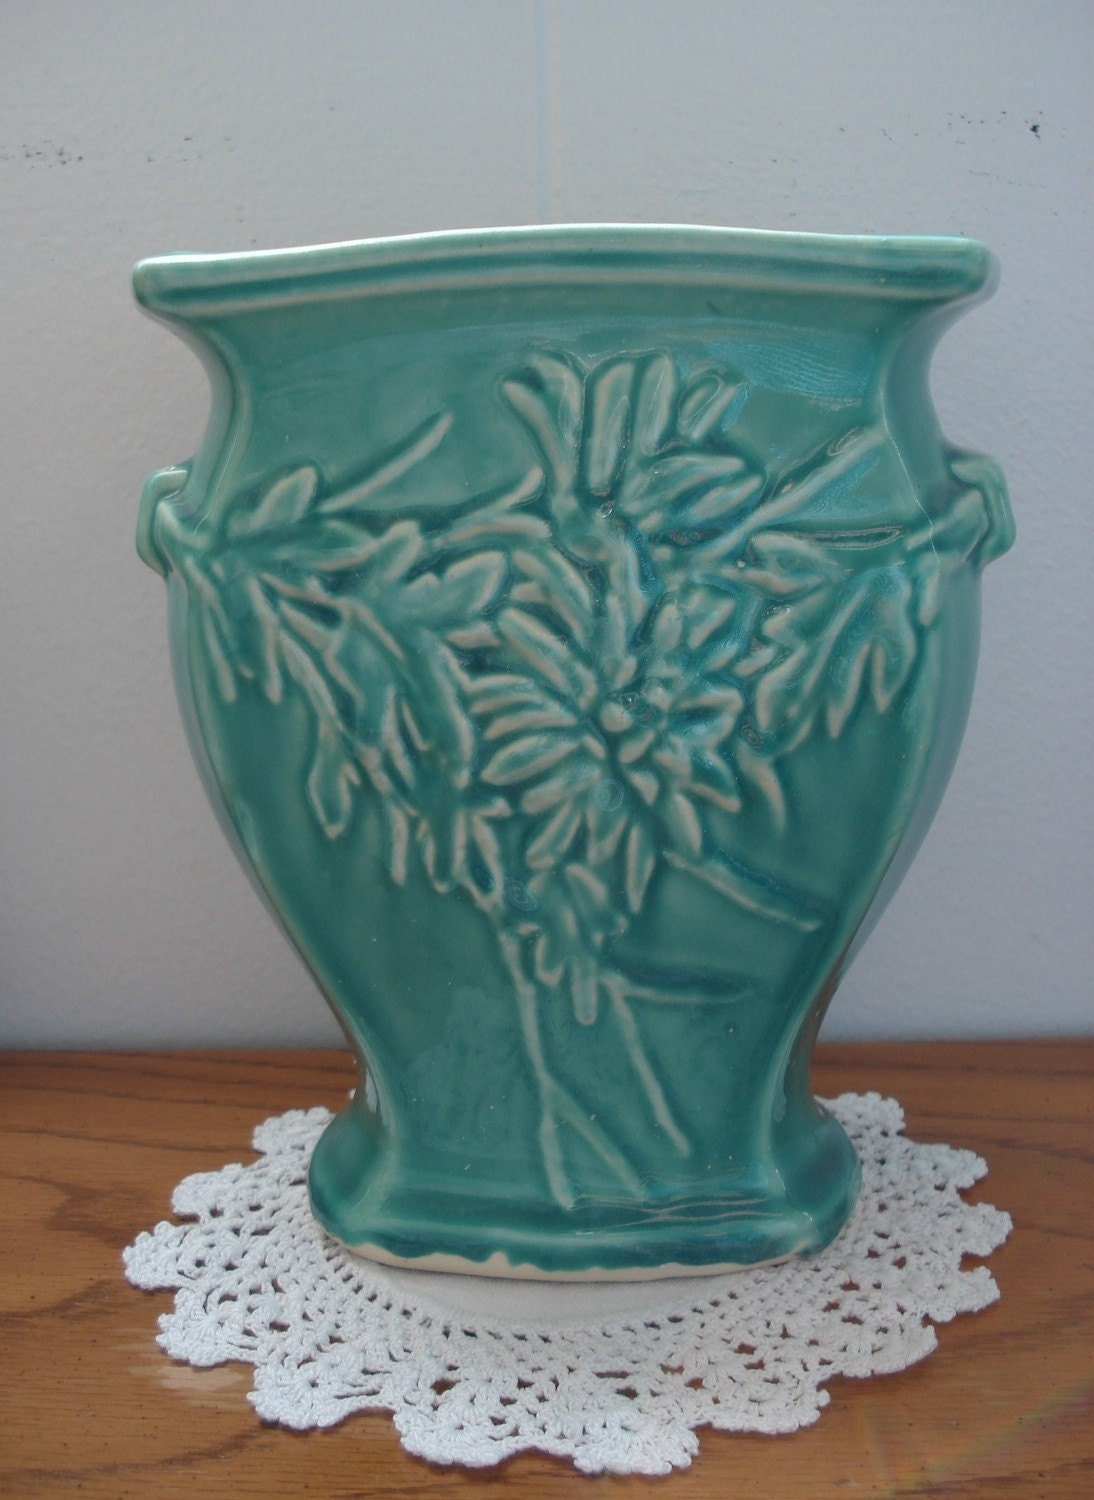 Antique 1940s Mccoy Aqua Turquoise Green Vase By